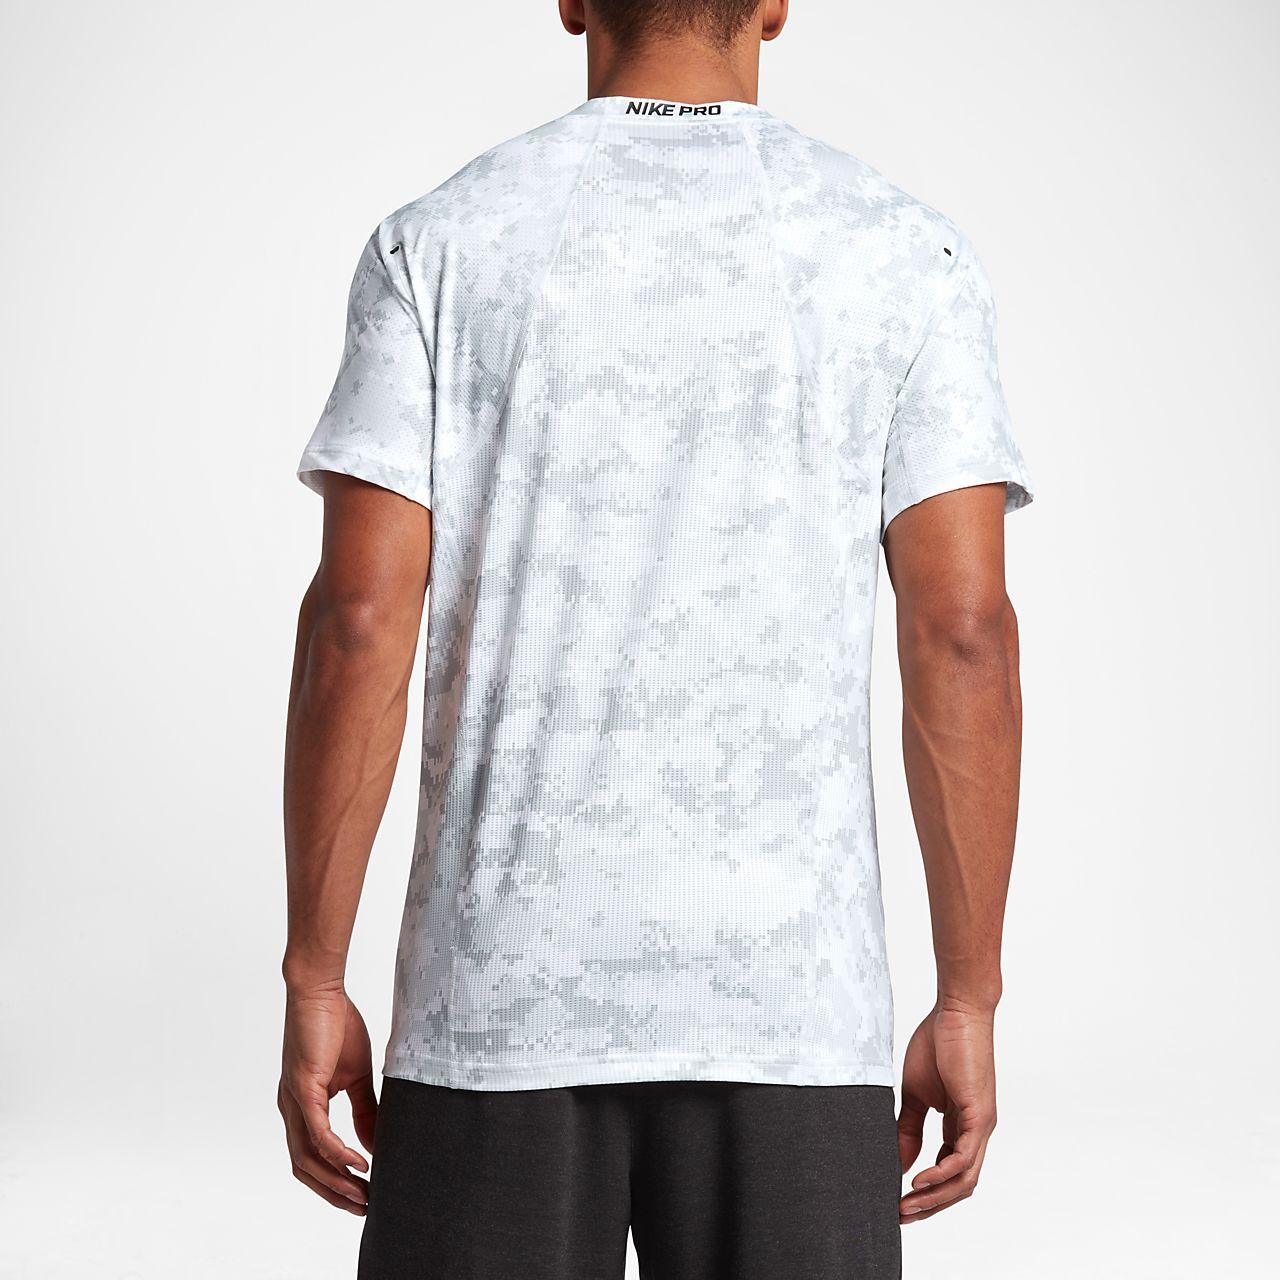 Nike Pro HyperCool Men's Short Sleeve Top White/Black